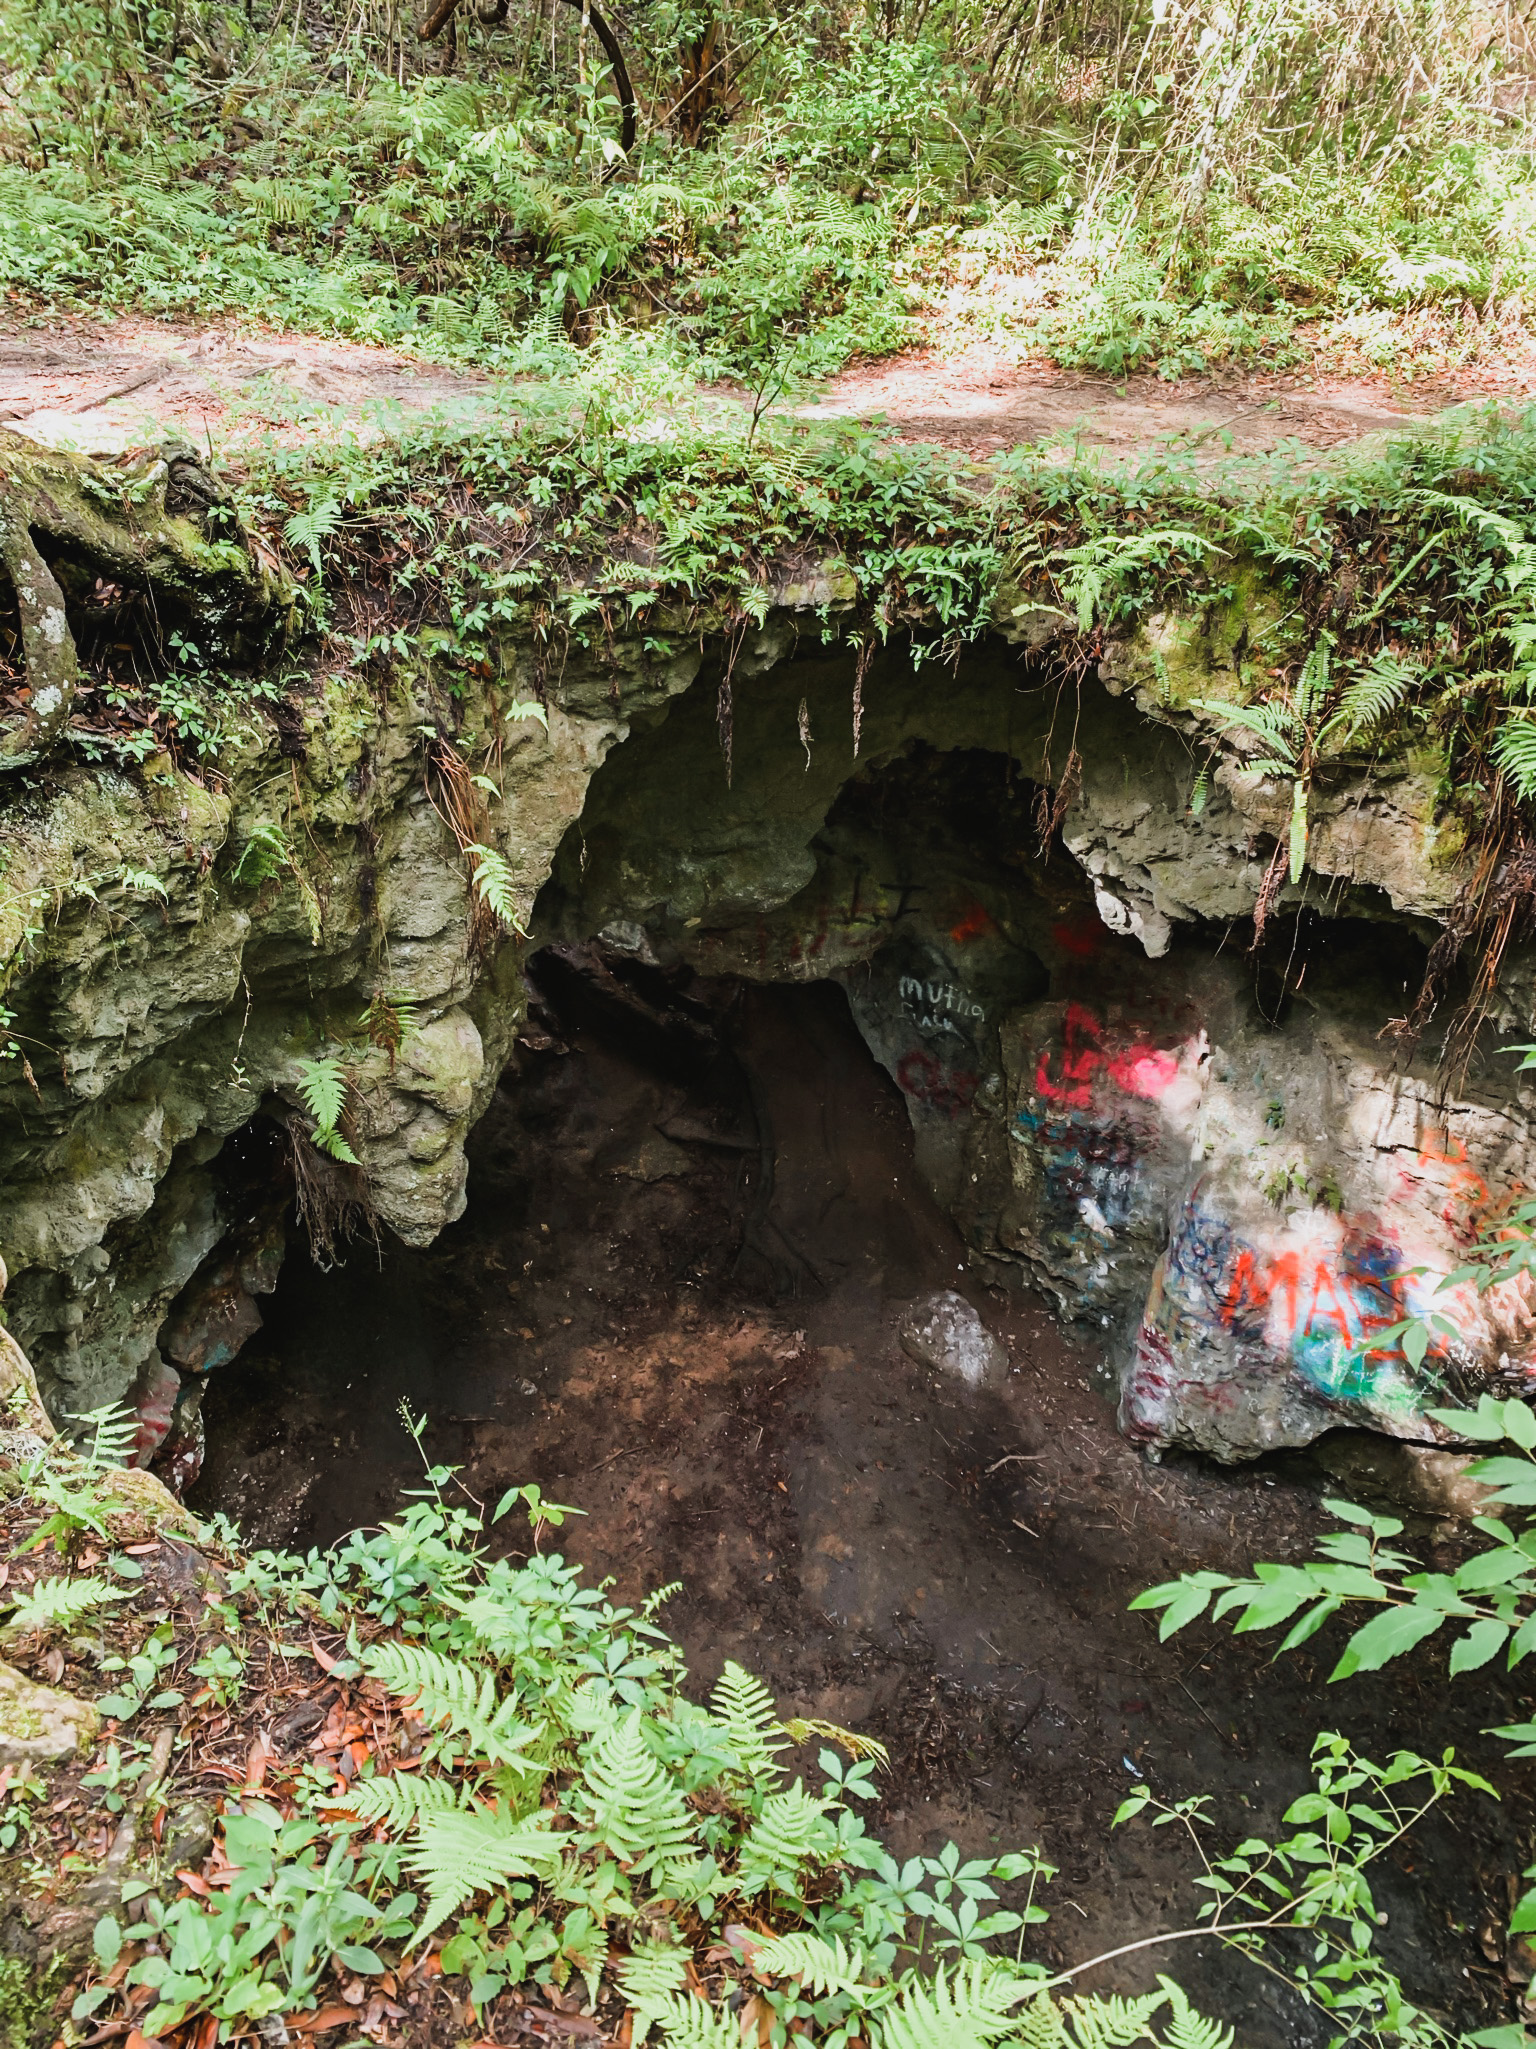 dames cave in Withlacoochee State Forest.